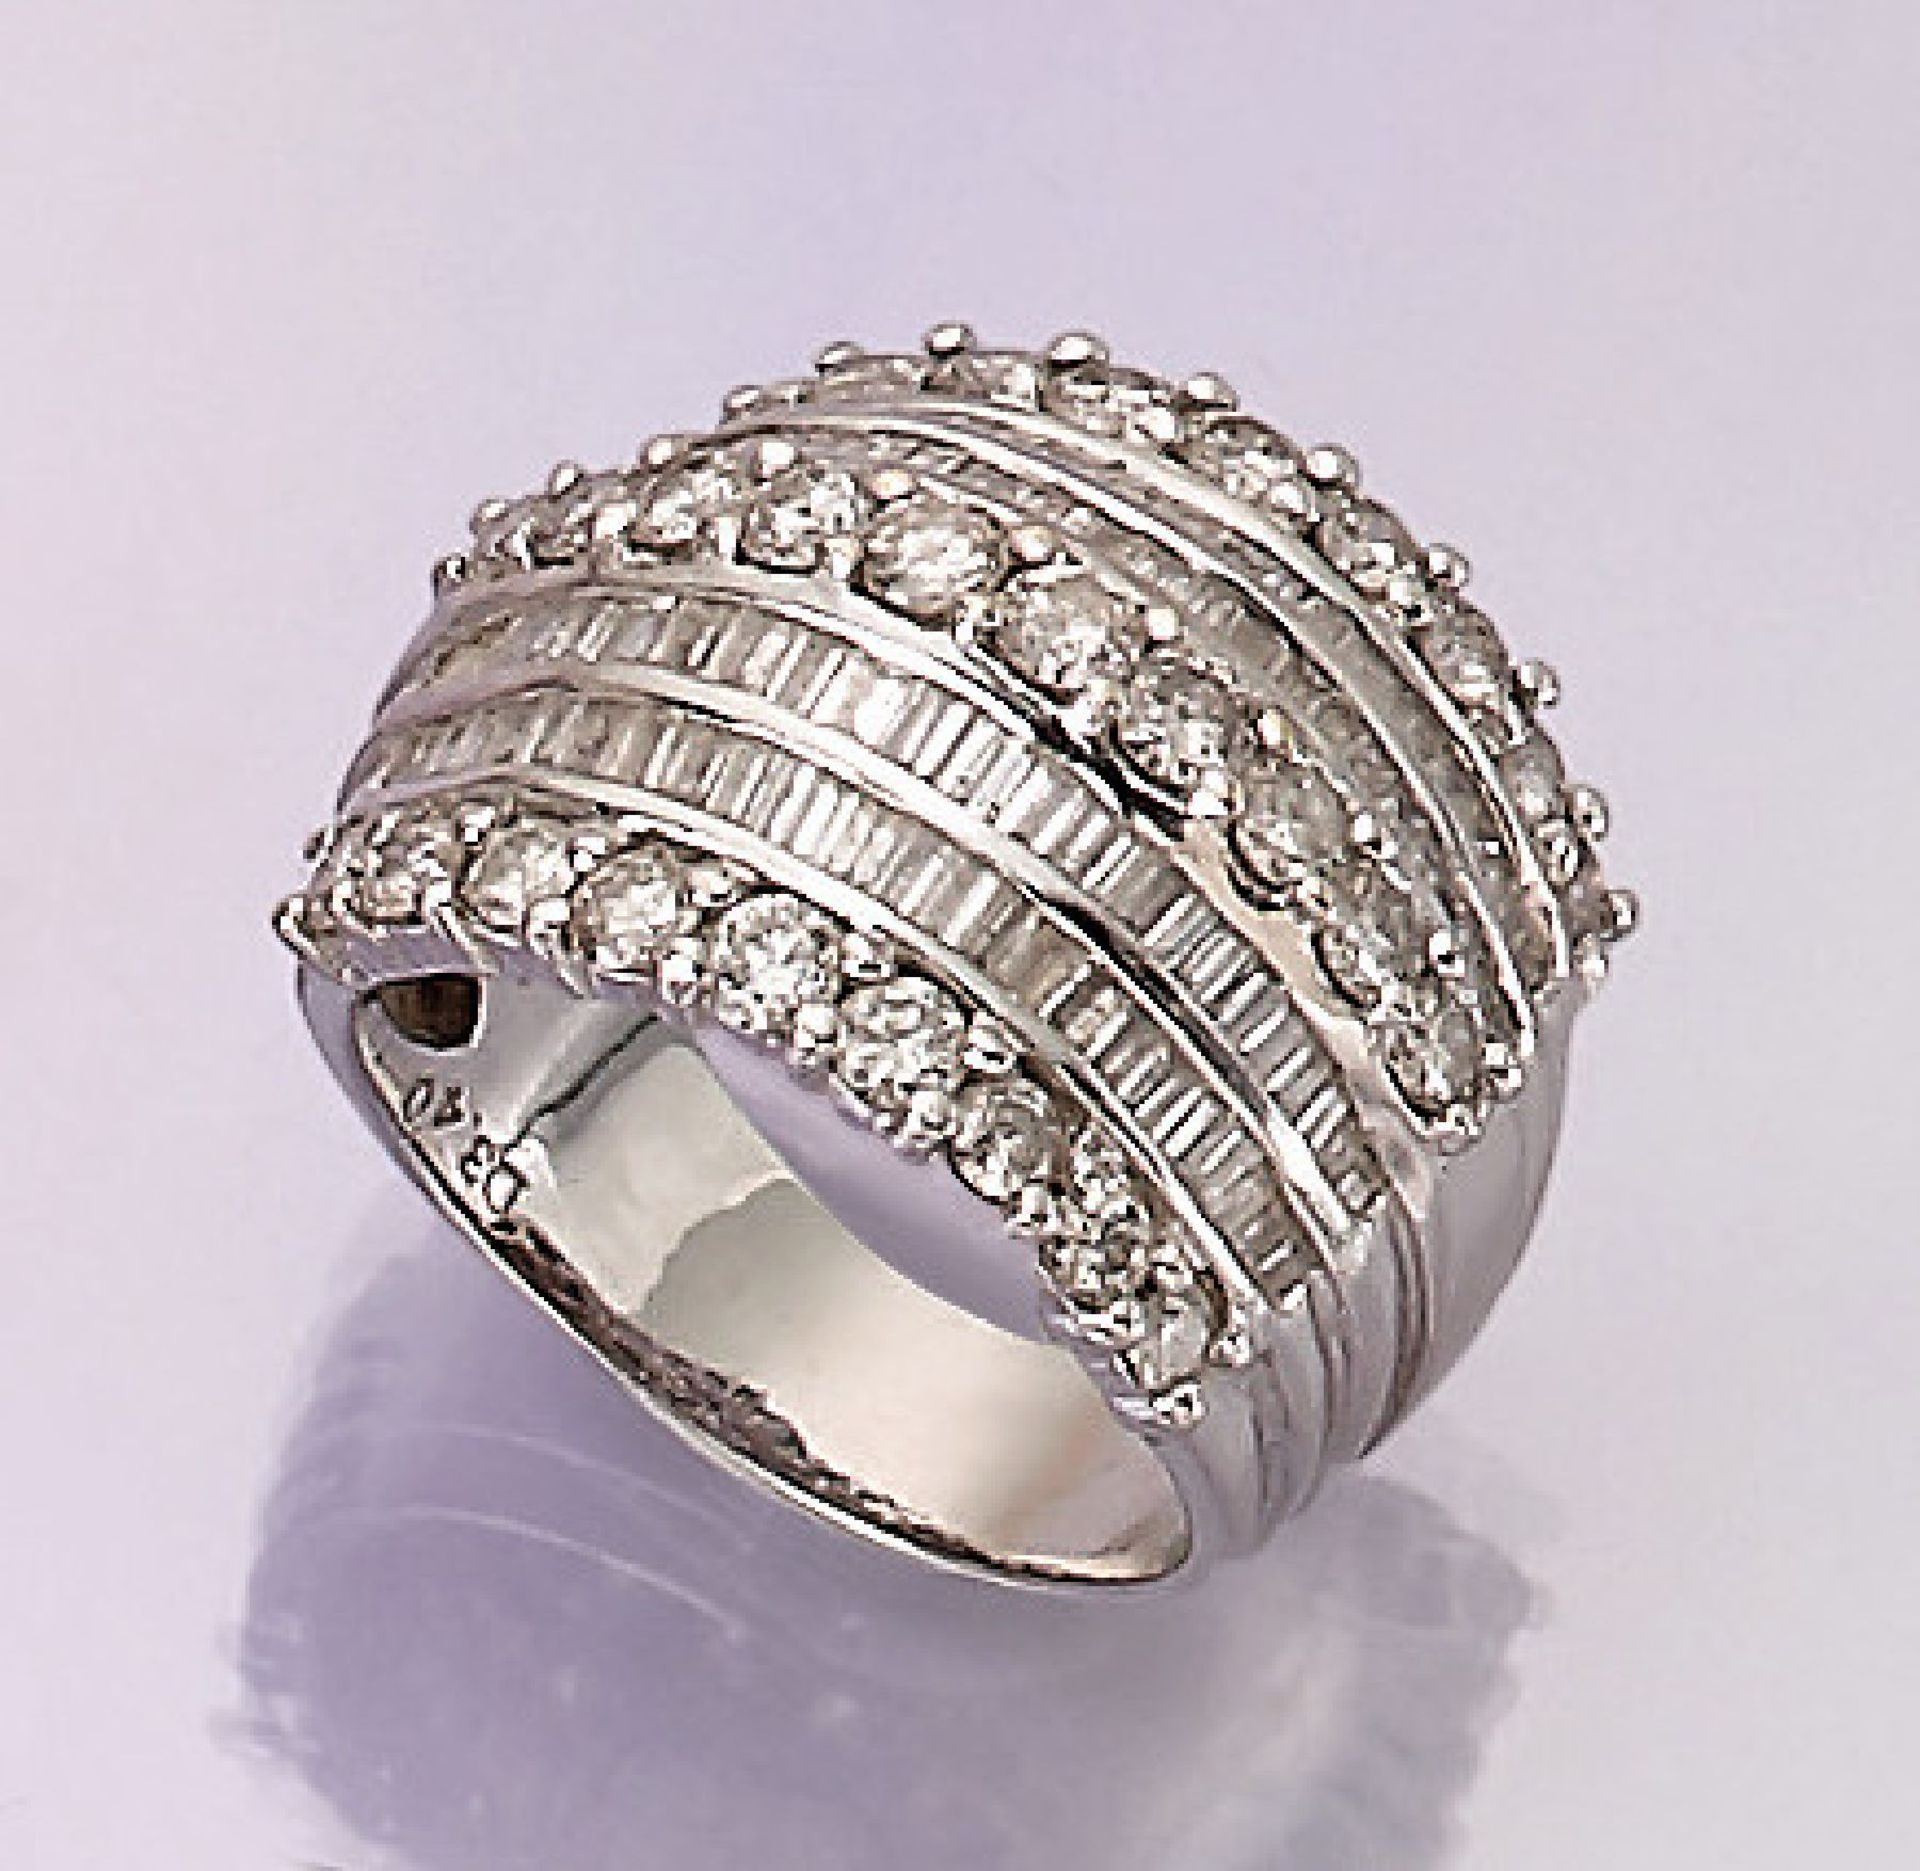 Los 31550 - 18 kt gold ring with diamonds , WG 750/000, 7-rowed with brilliants and diamond baguettes total